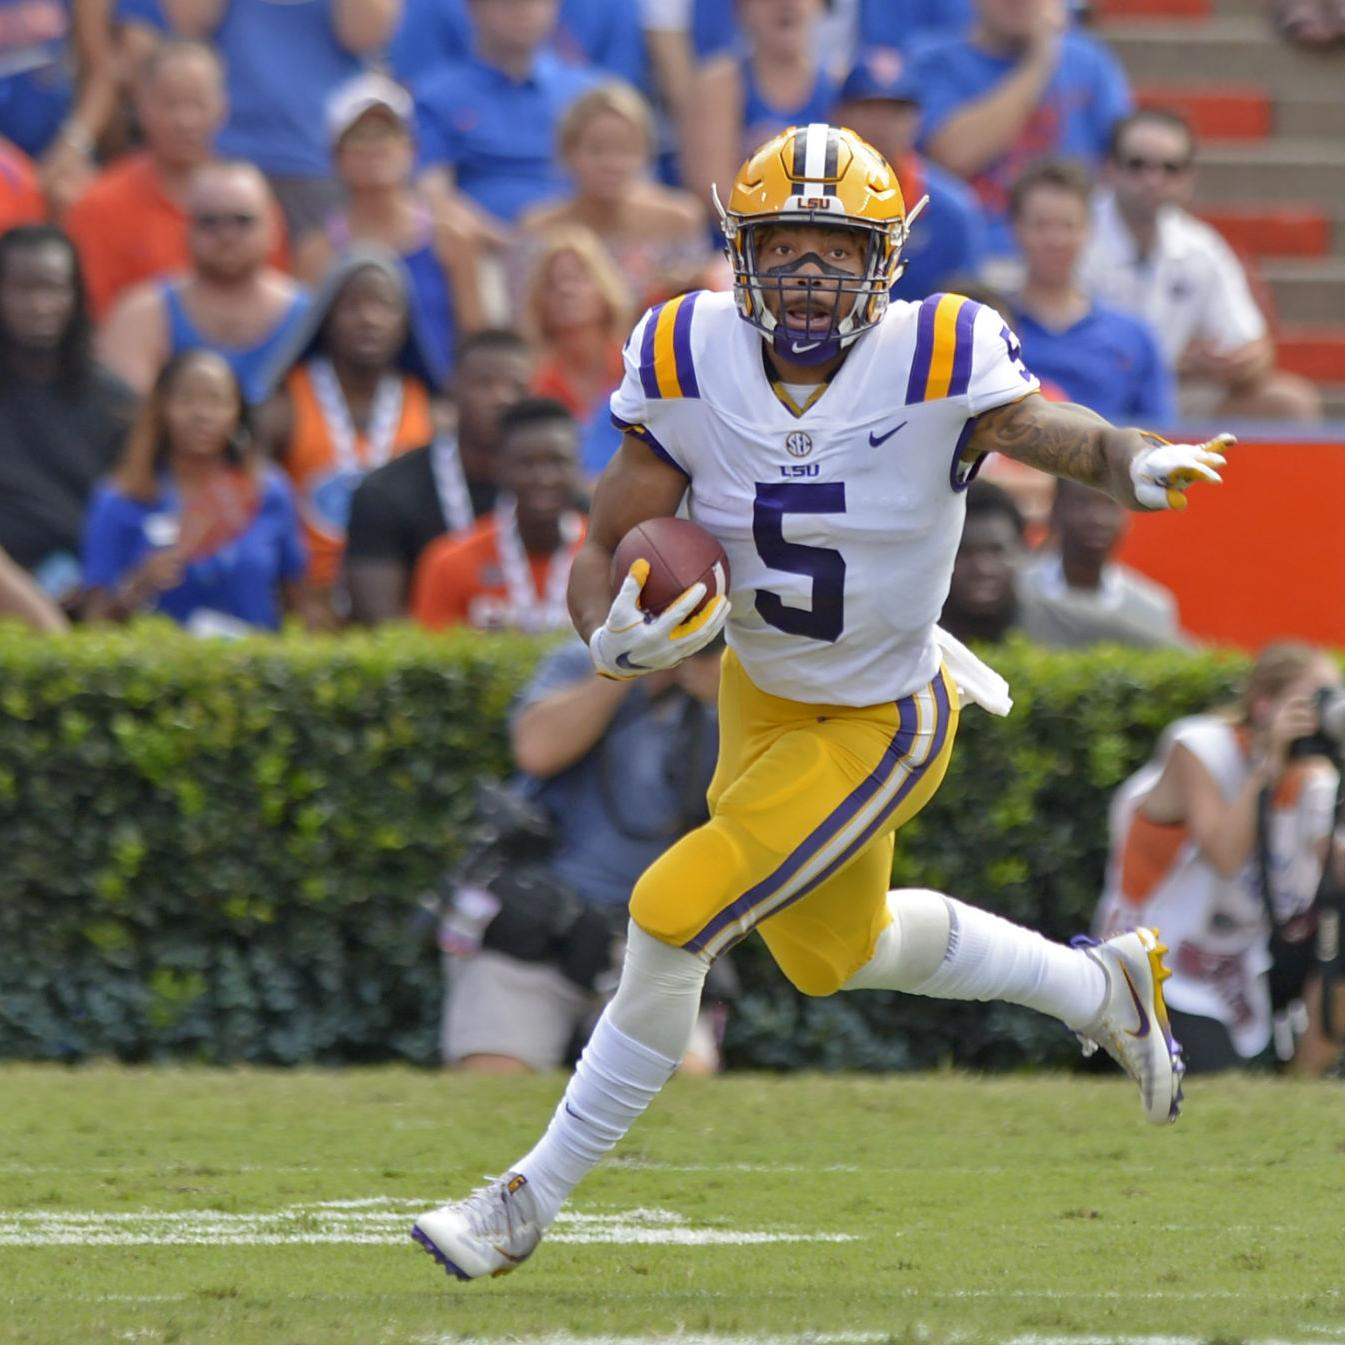 LSU RB Derrius Guice still limited with 'nagging injury,' Ed Orgeron said; Arden Key down to 255 pounds | LSU | theadvocate.com